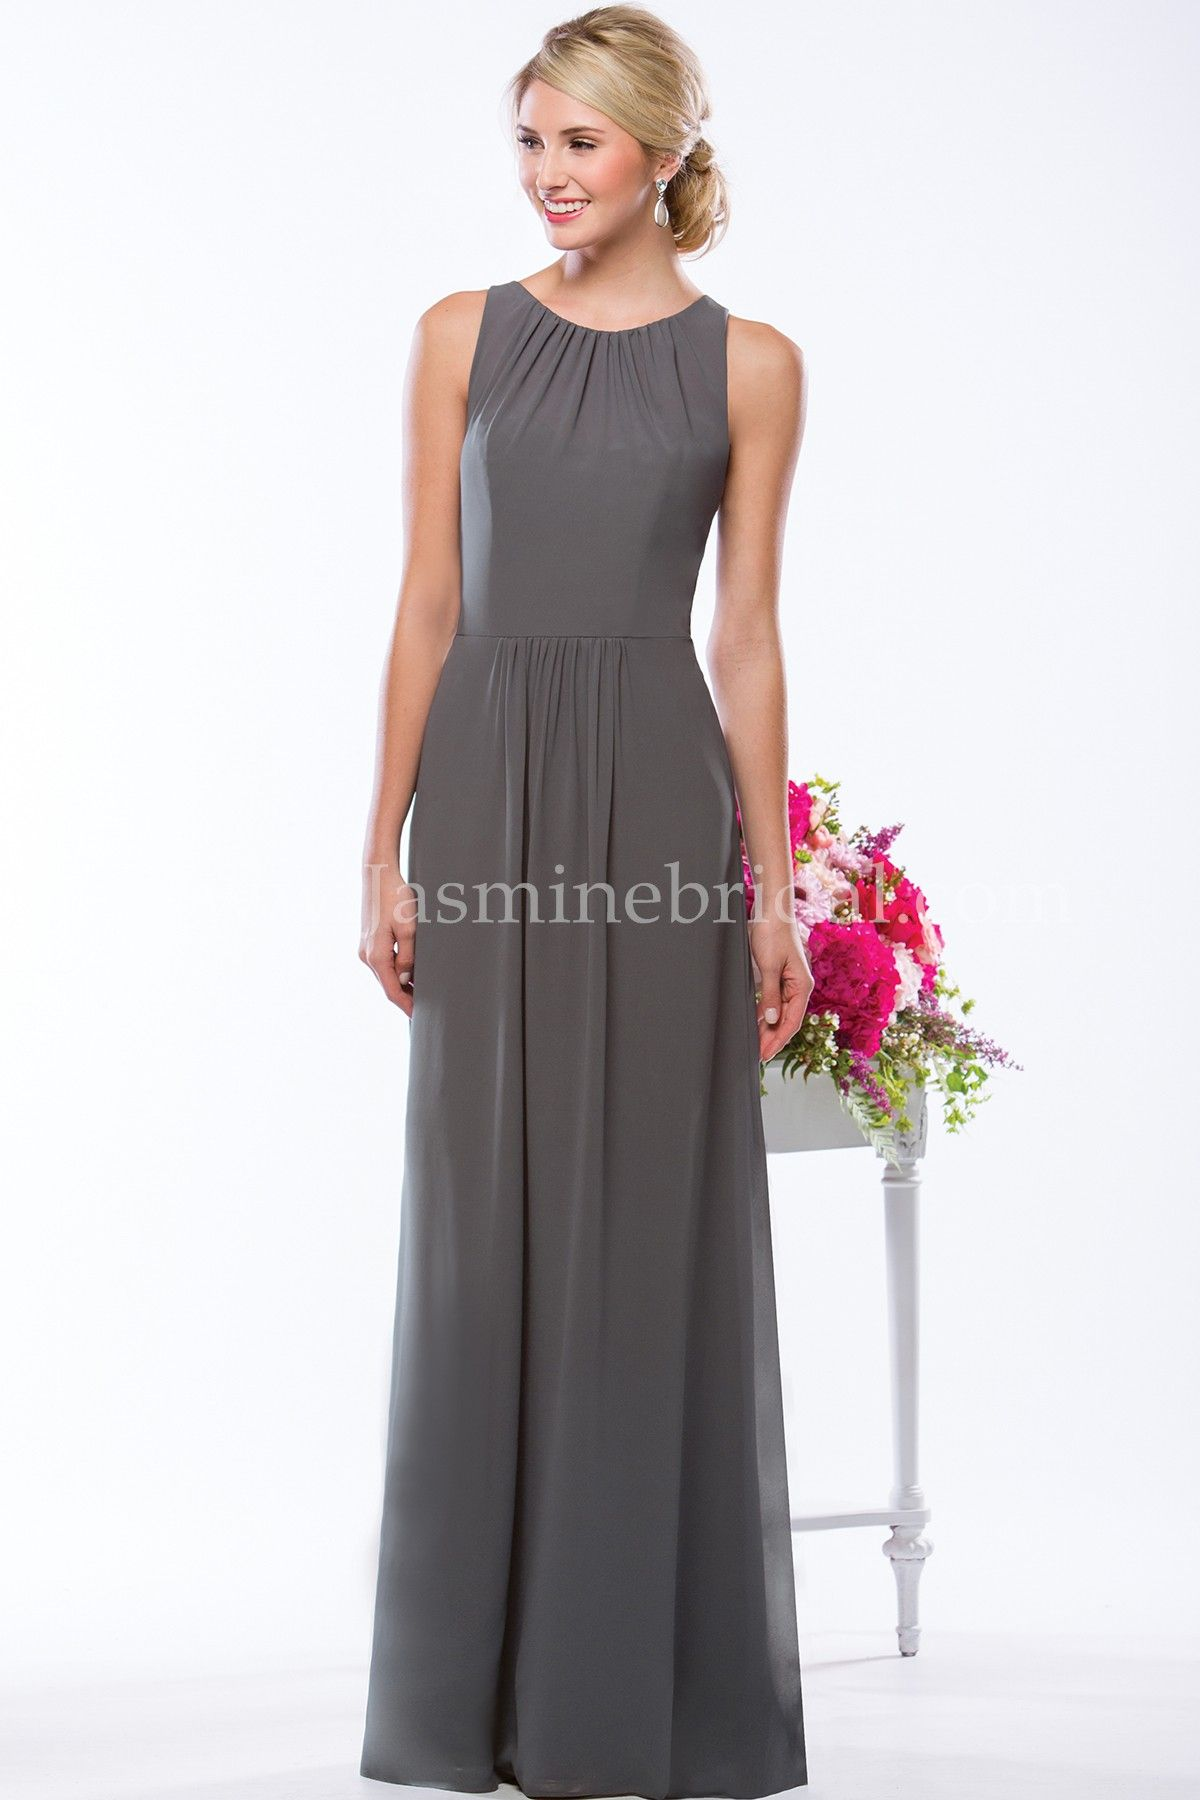 Jasmine bridal bridesmaid dress jasmine bridesmaids style p176052 in jasmine bridal bridesmaid dress jasmine bridesmaids style p176052 in iron chic and stylish ombrellifo Images